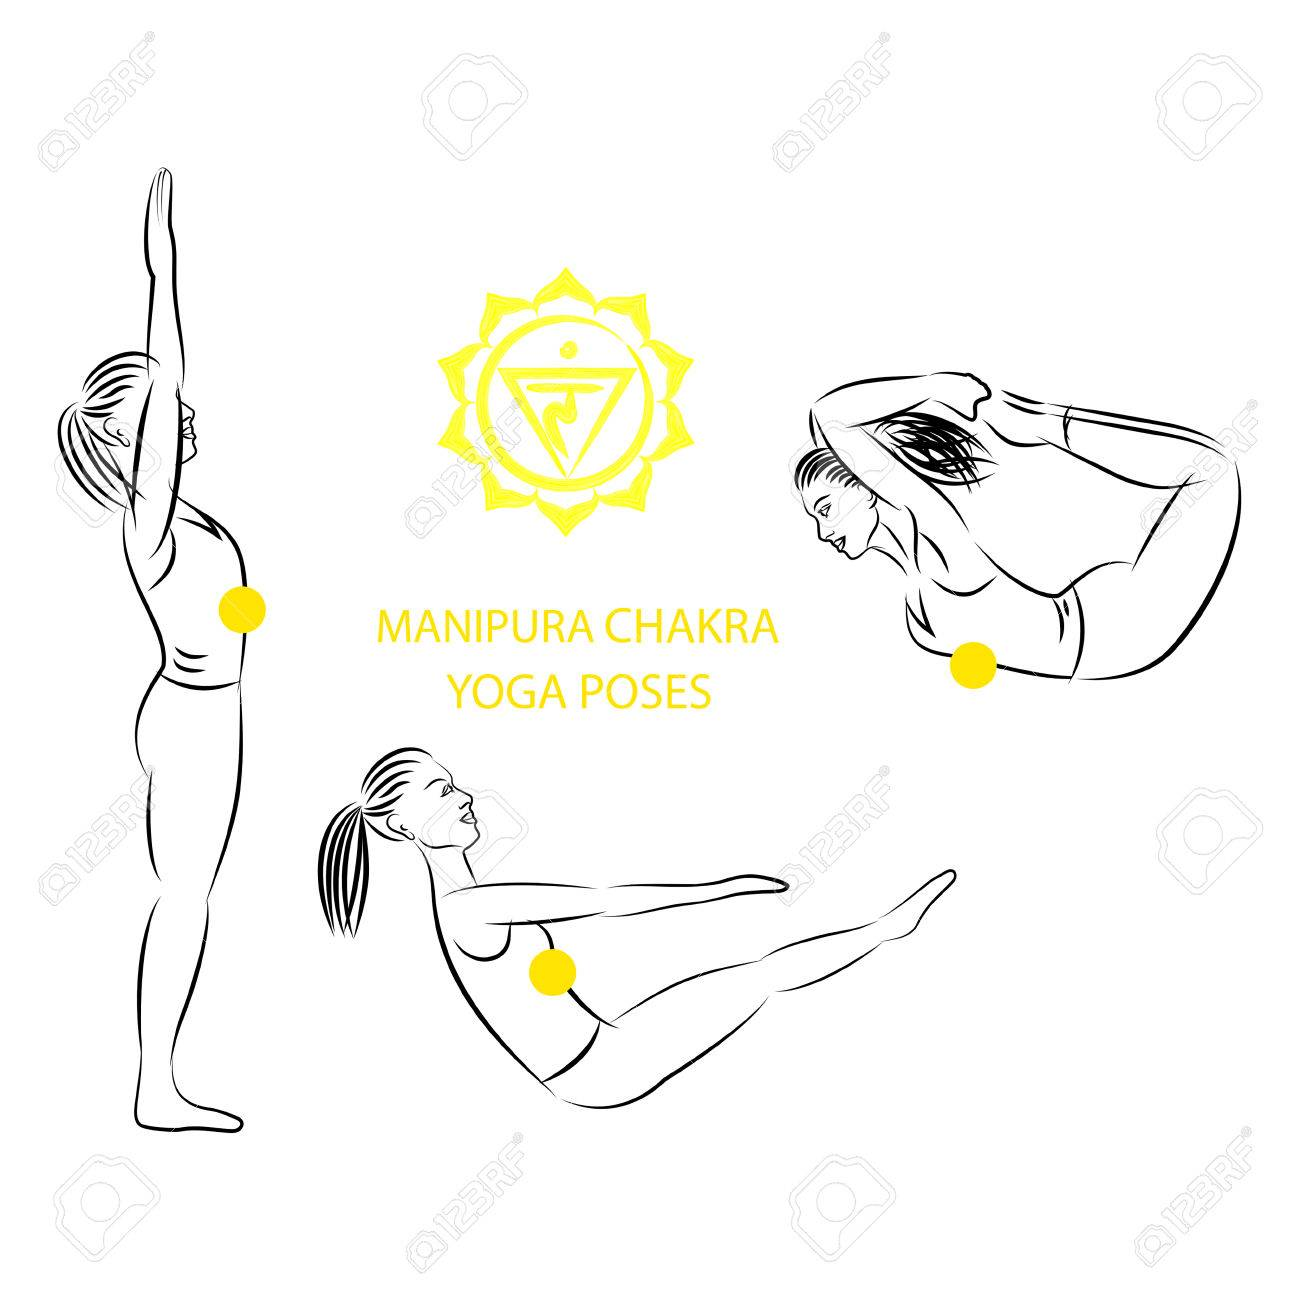 Yoga poses for Manipura chakra activation vector illustration.